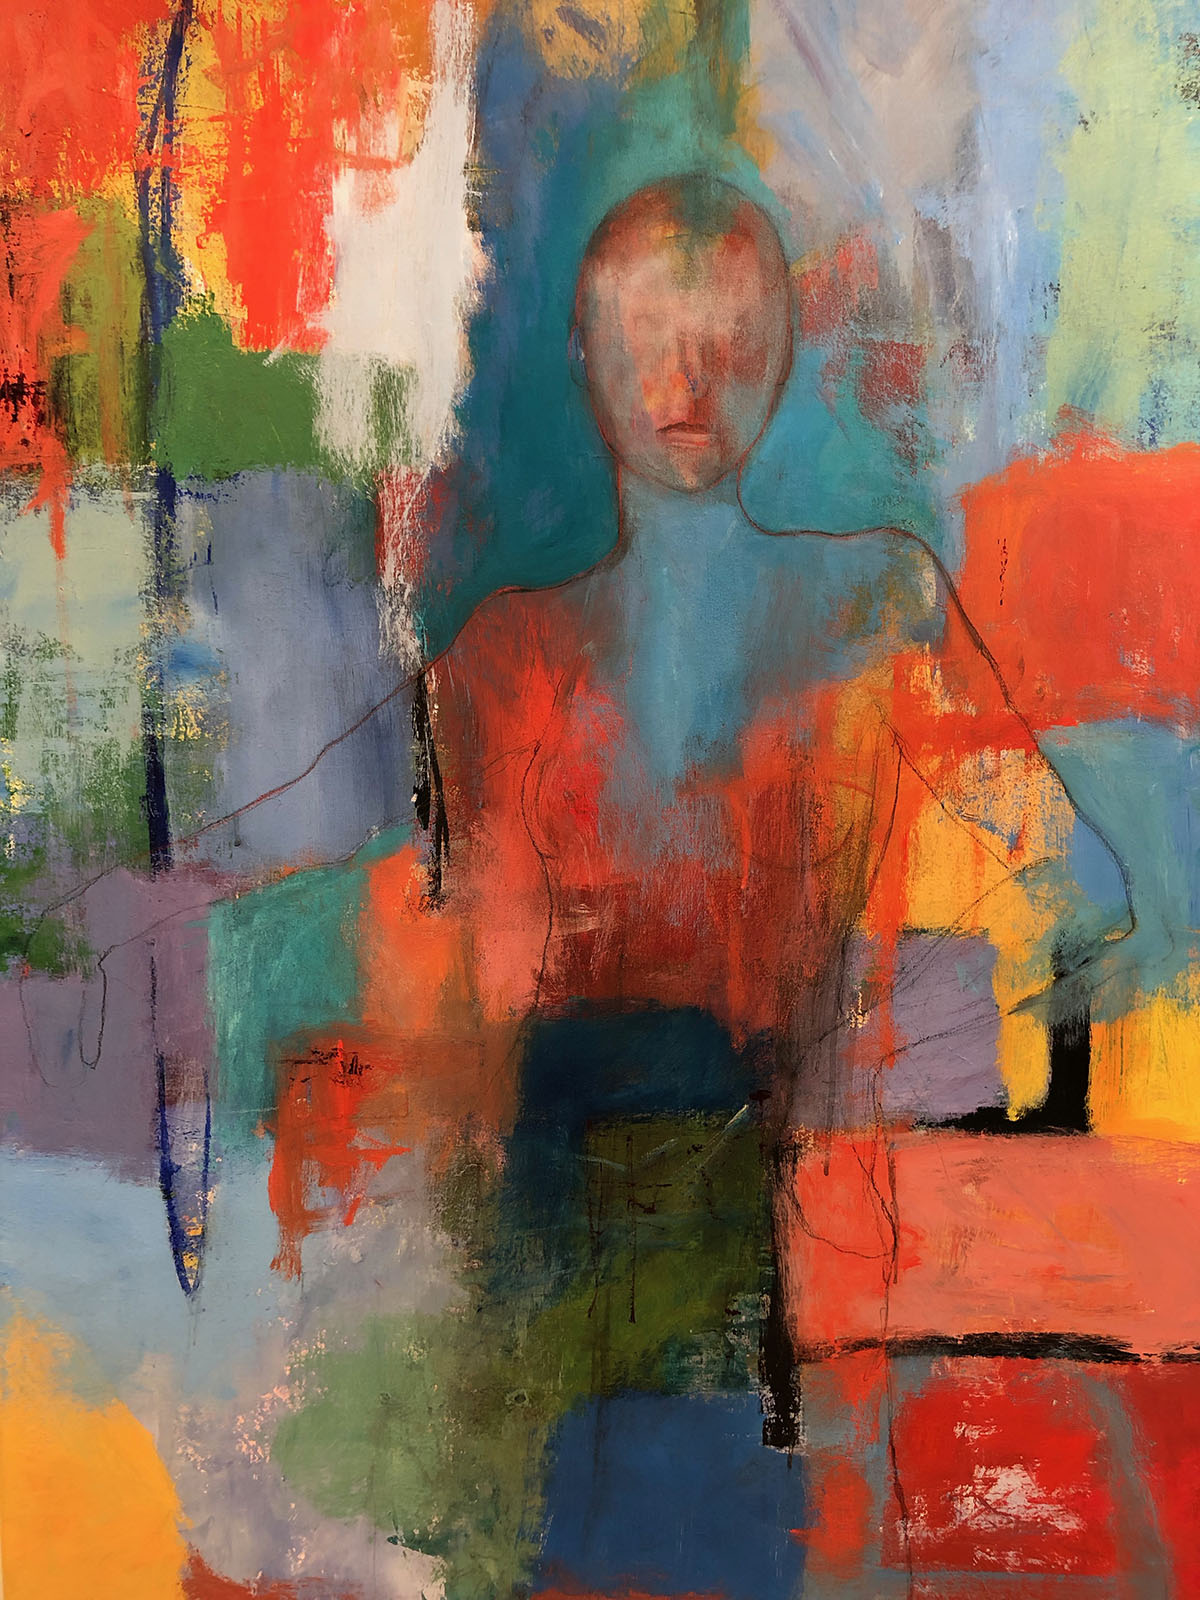 Stay Calm work by Susan Tilt (October 2019)